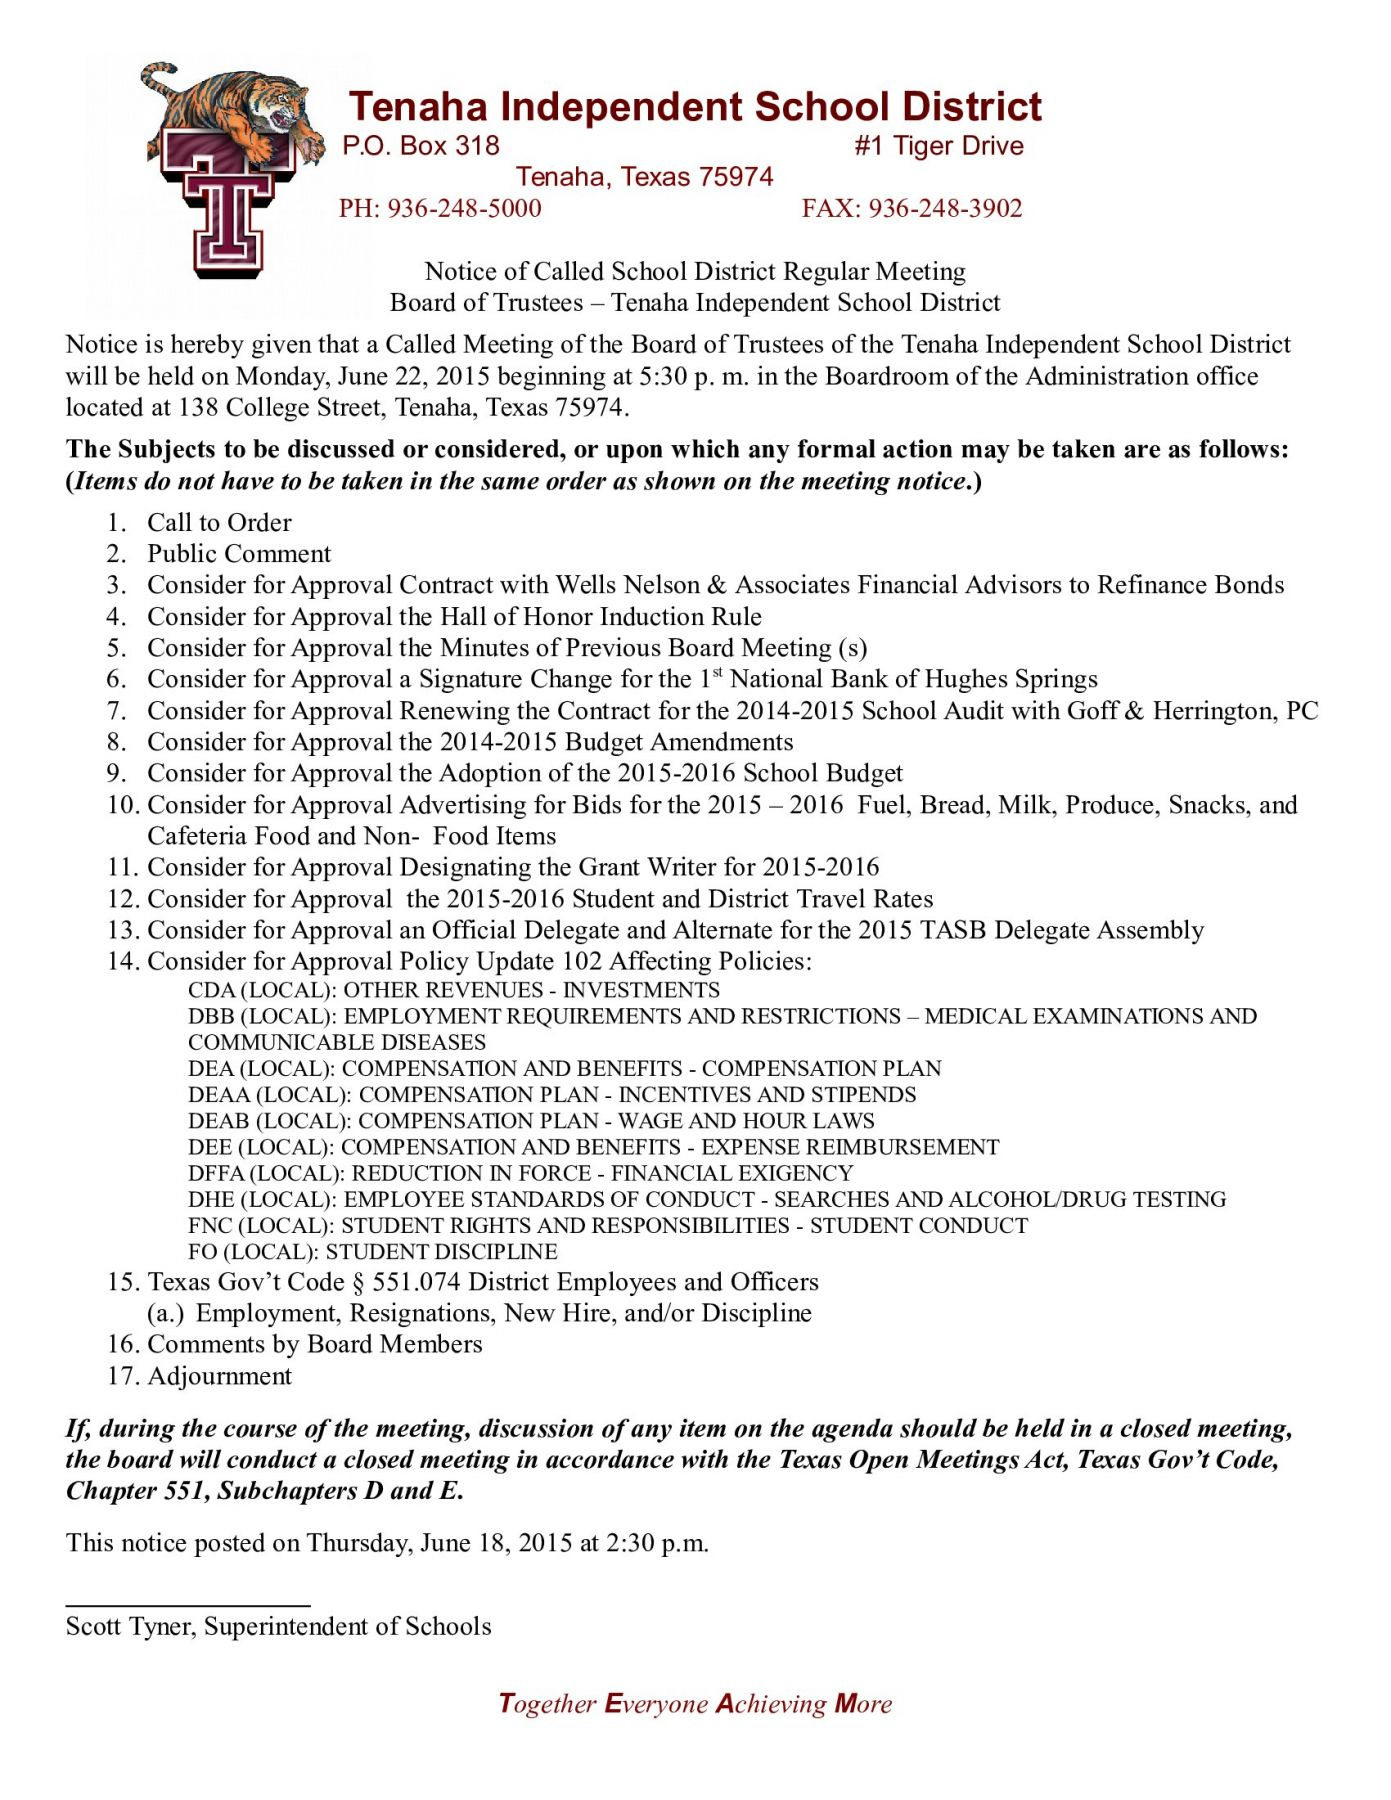 News headlines center broadcasting live local reaching out tenaha isd board of trustees to meet monday agenda nvjuhfo Image collections